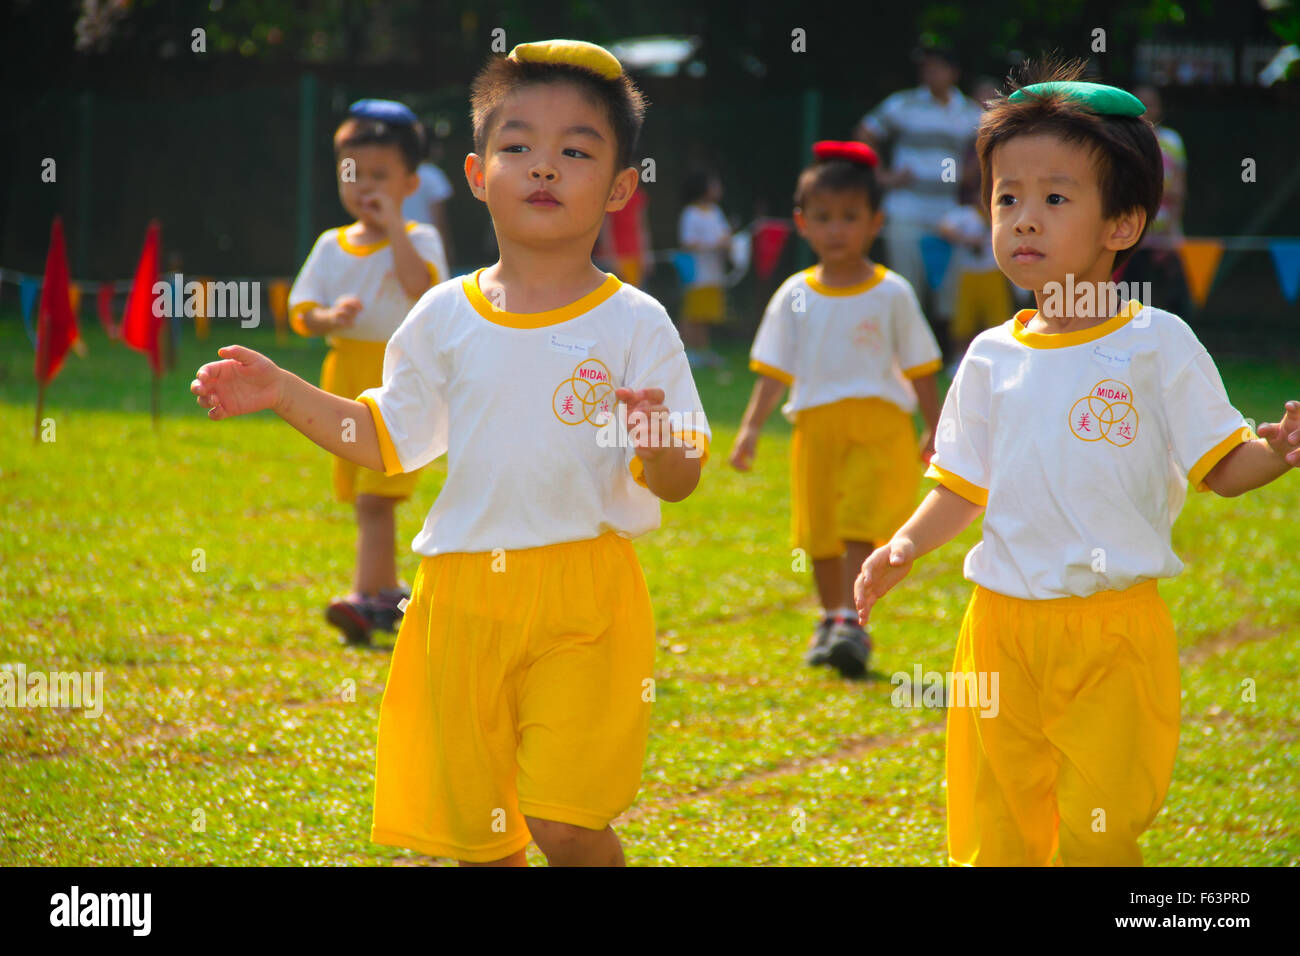 Kindergarten children competing in balancing bean bag race during their sport day. - Stock Image